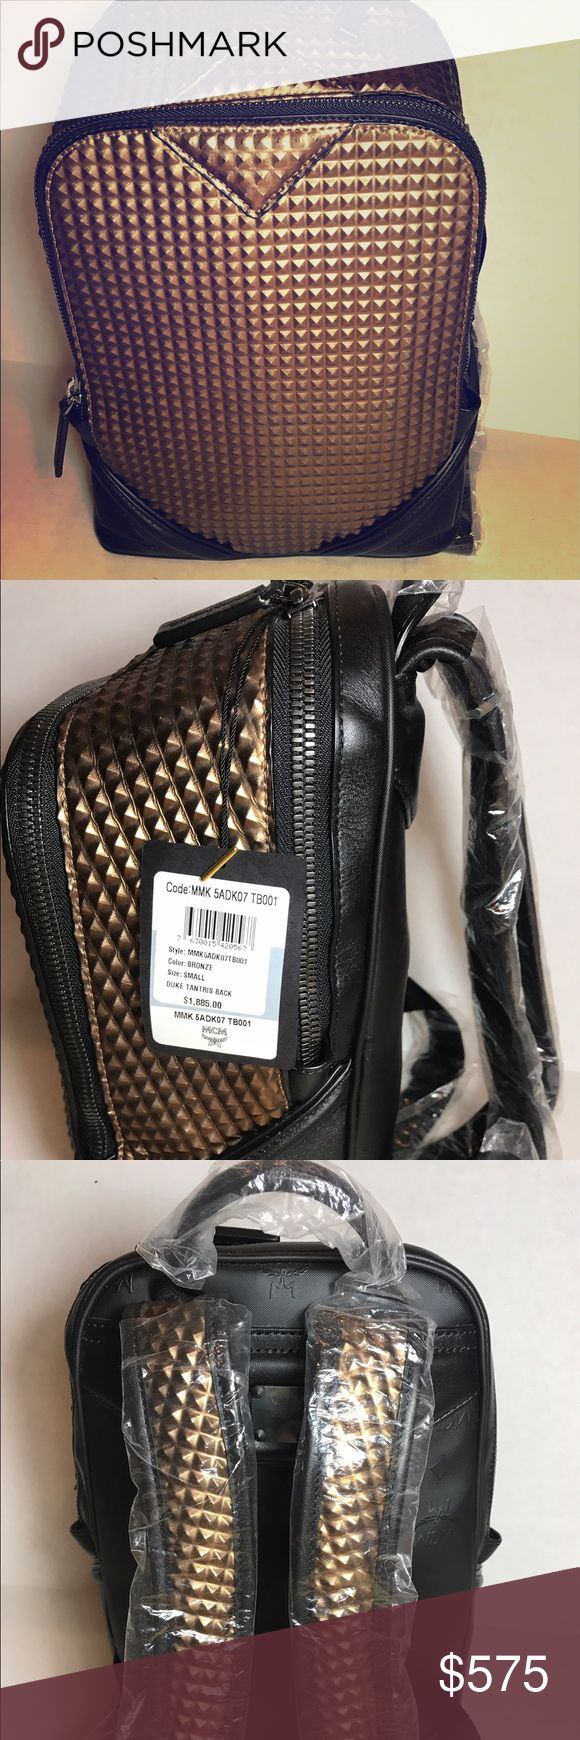 NEW MCM Bronze Duke Tantris Backpack Size Small New with tags and dust bag. Black with bronze/copper geometric cube embellishment. MCM Bags Backpacks